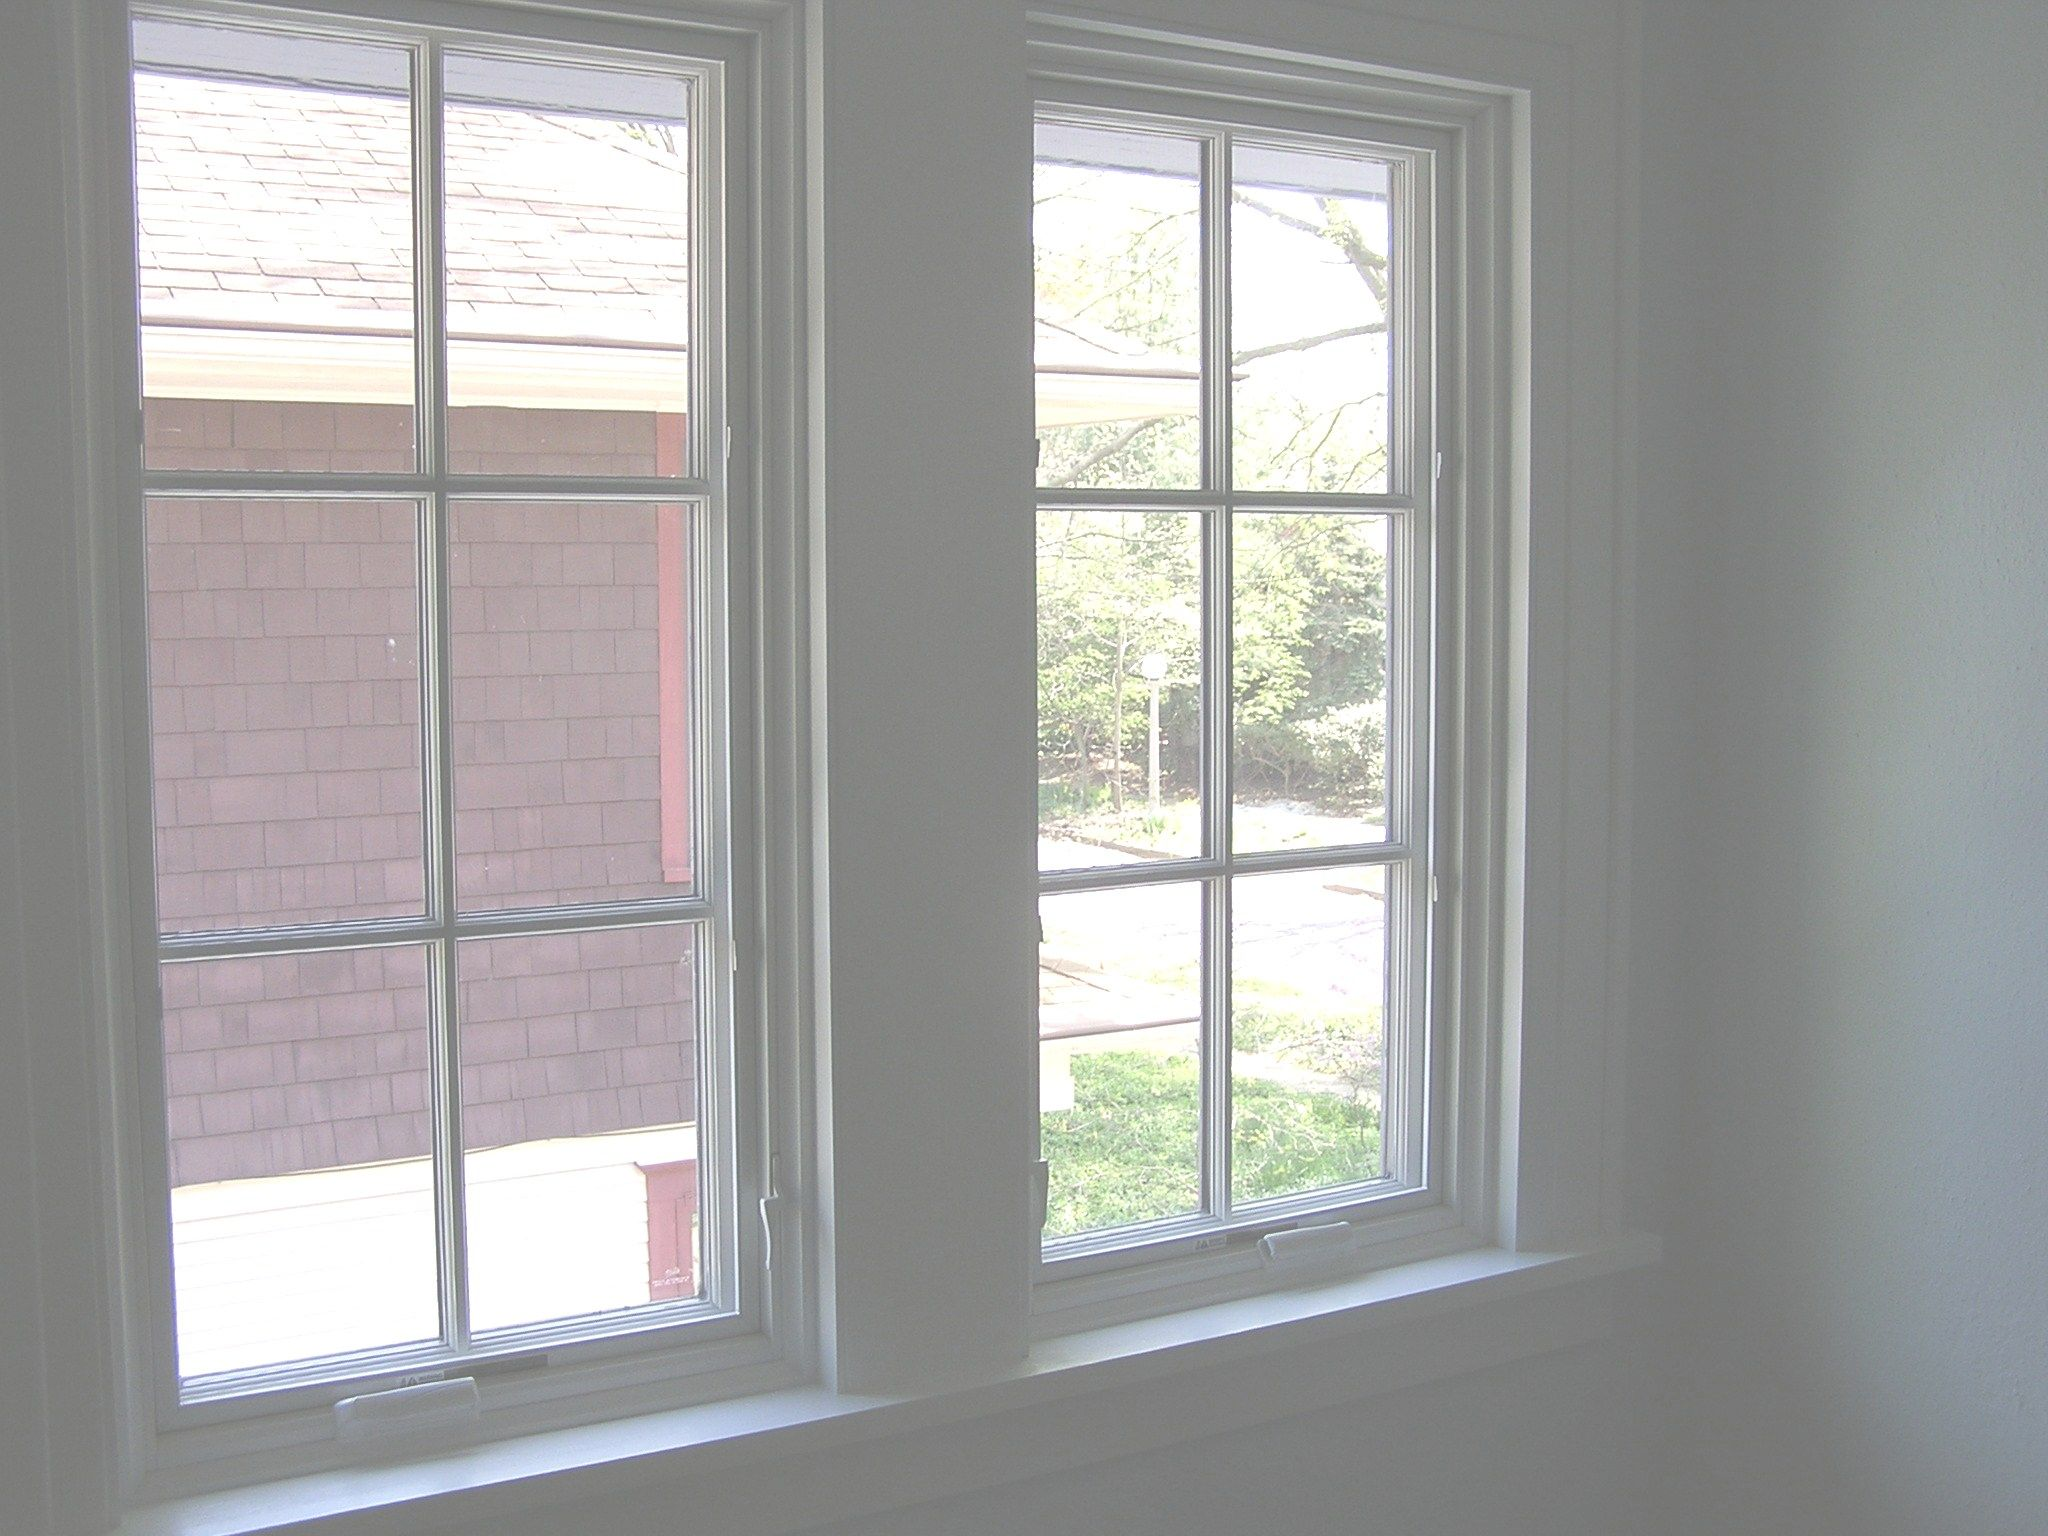 Interior window frames - Image result for window inside